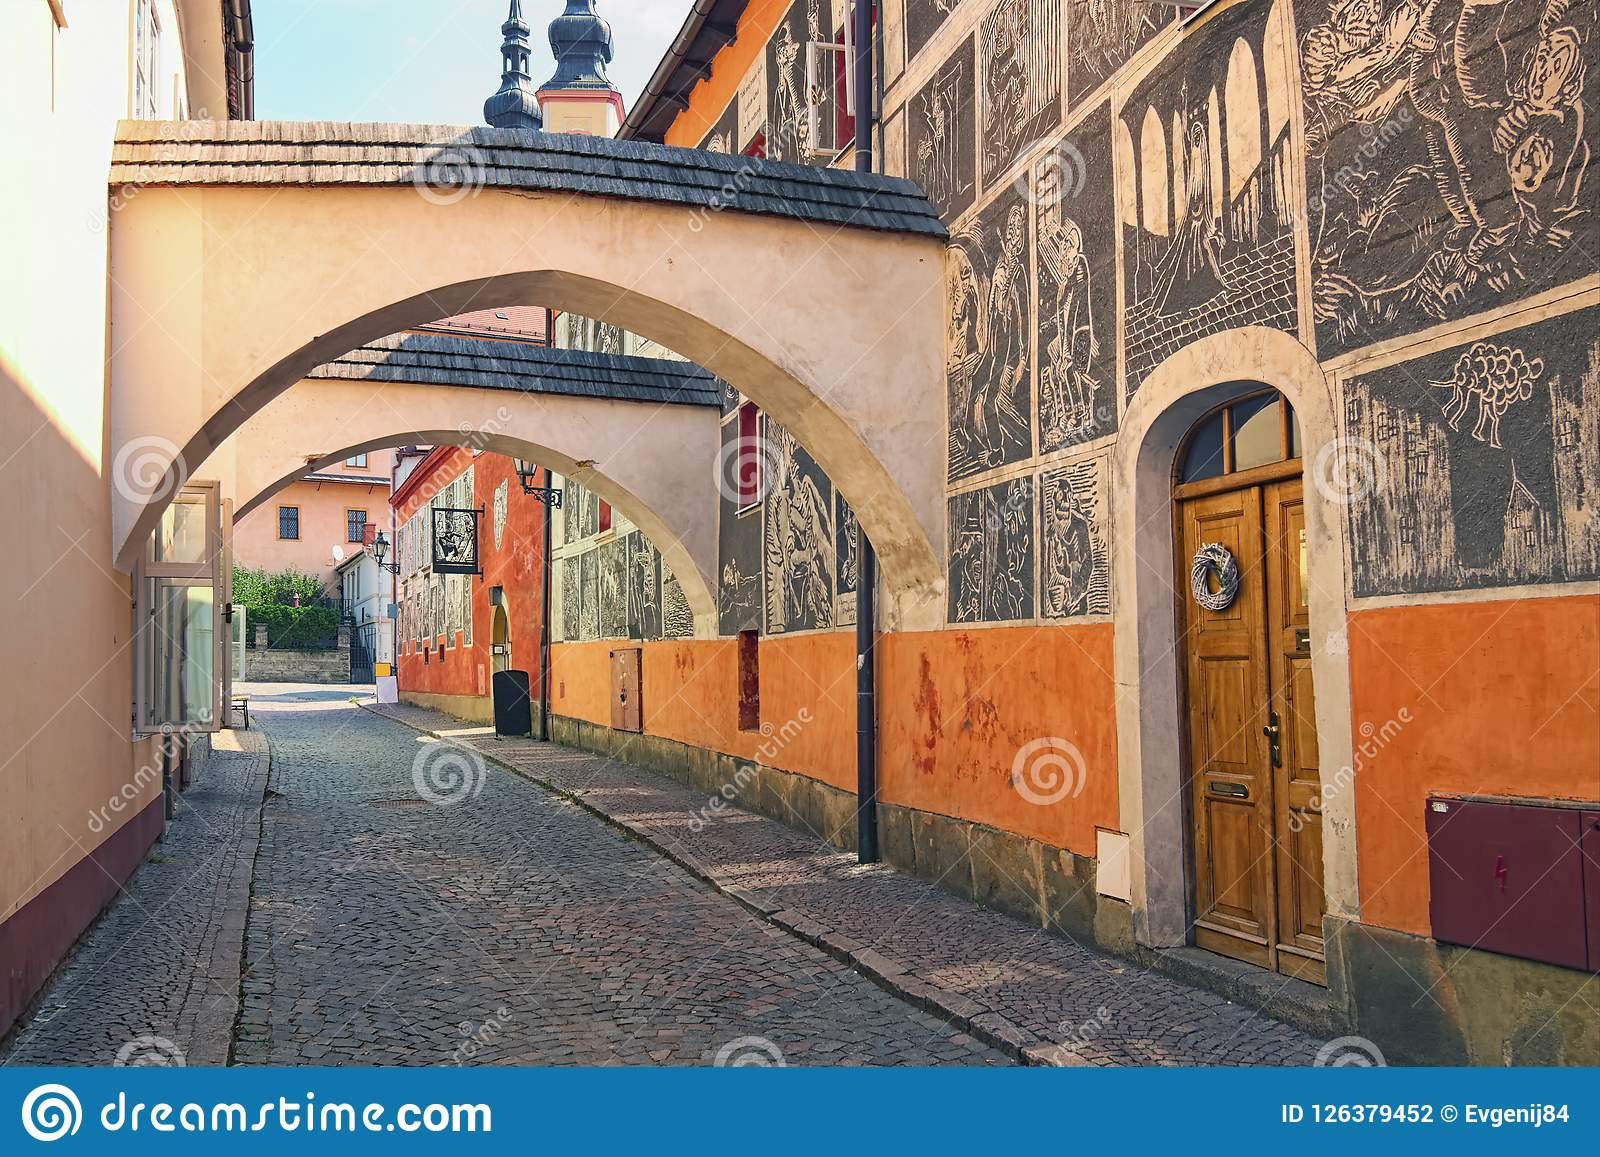 Famous josef vachala street colorful narrow street with archway and black and white pictures in the wall josef vachala litomysl czech republic